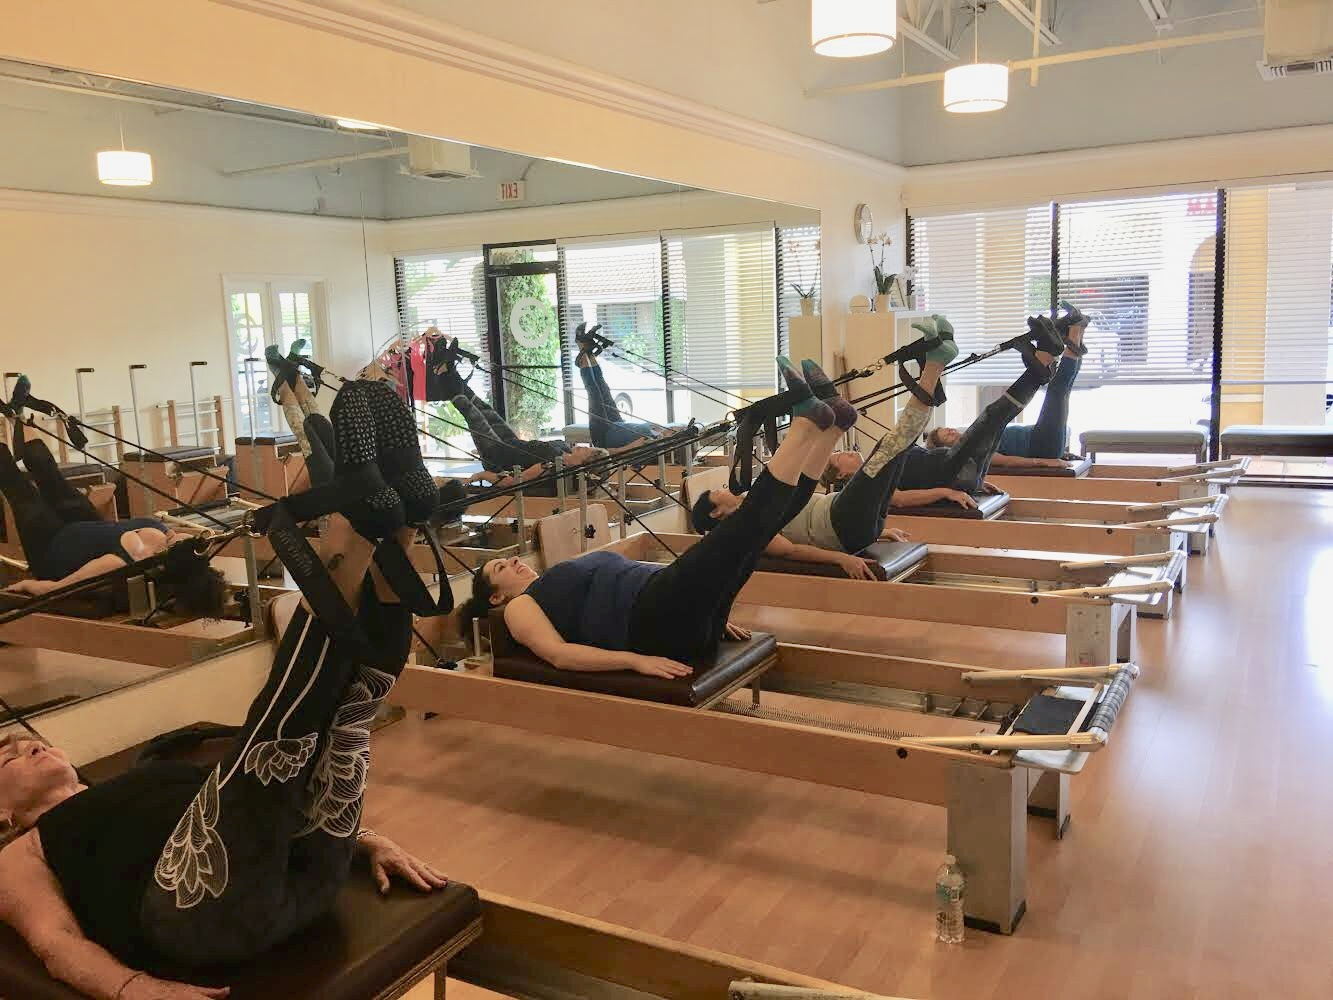 Fall Back into Fitness with our new schedule! - Pilates, TRX